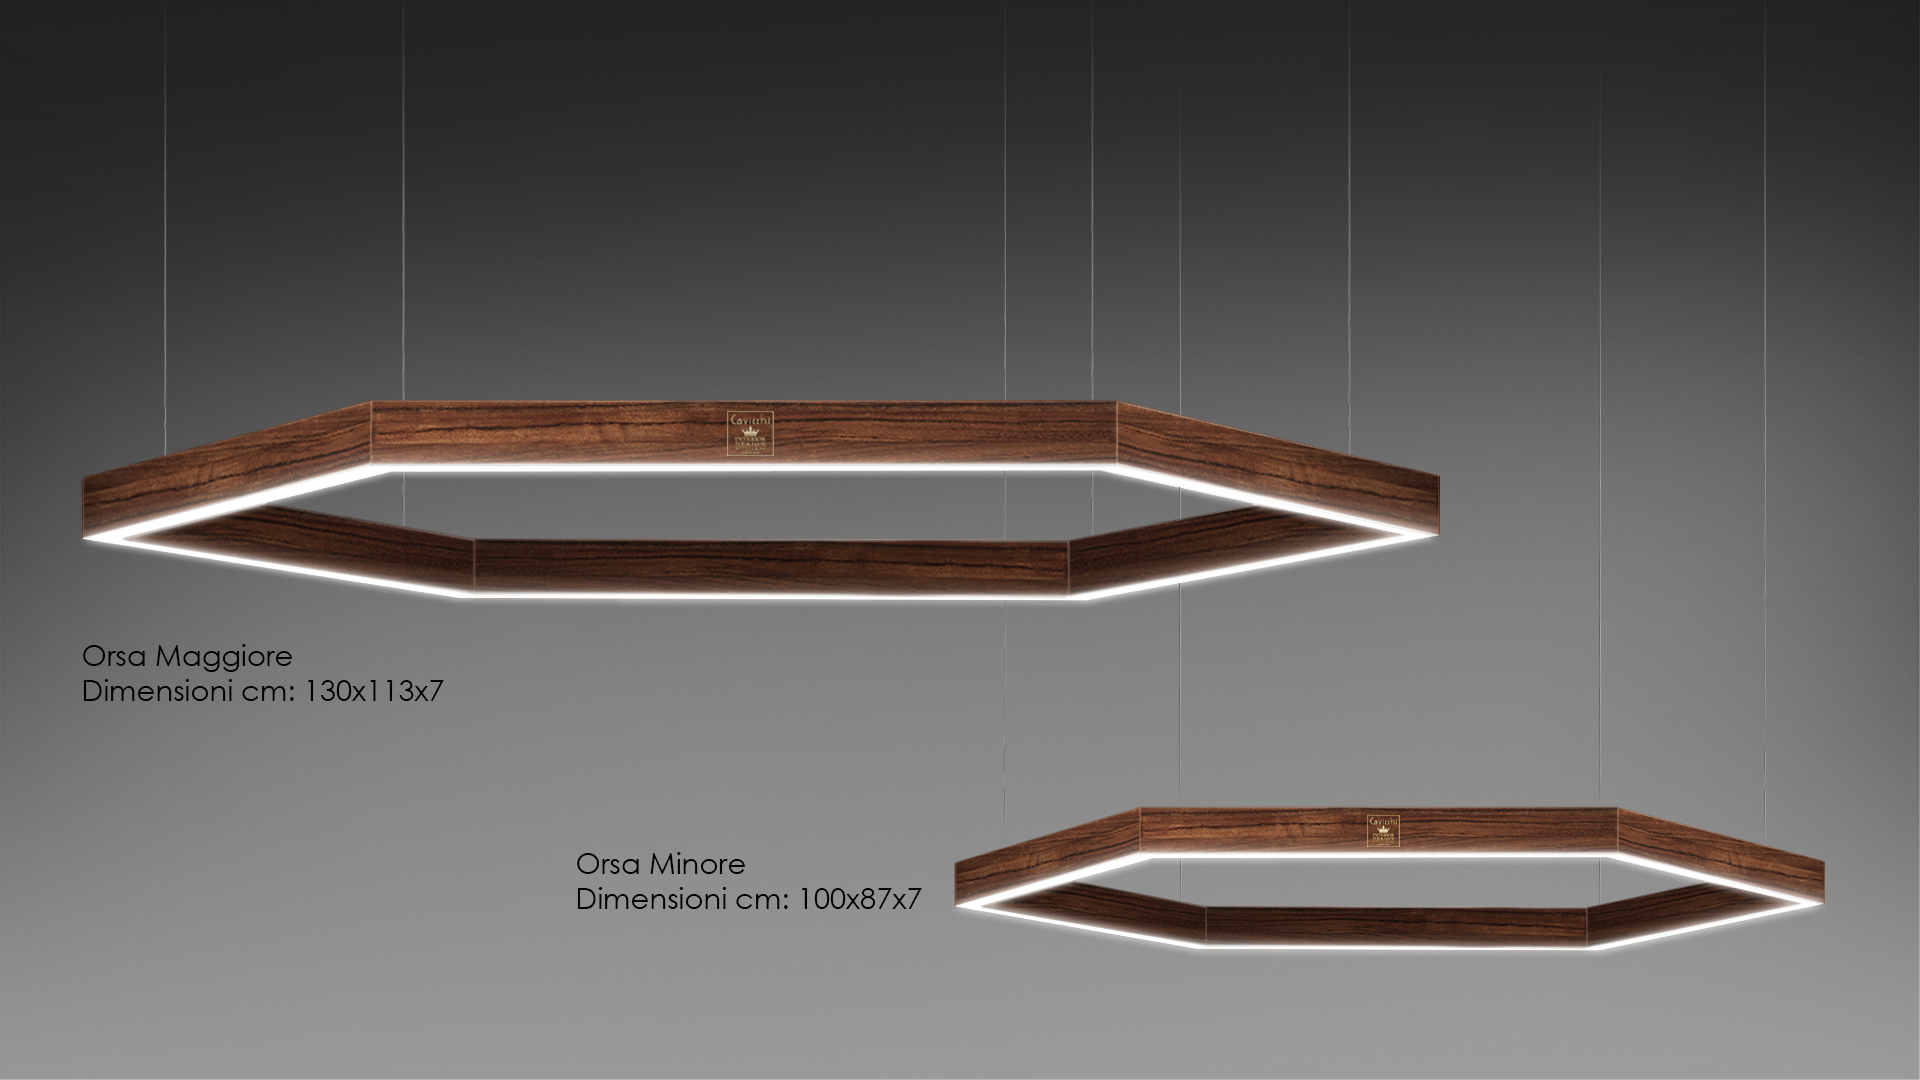 Orsa Maggiore - Orsa Minore Lamp lacquered and precious woods 1